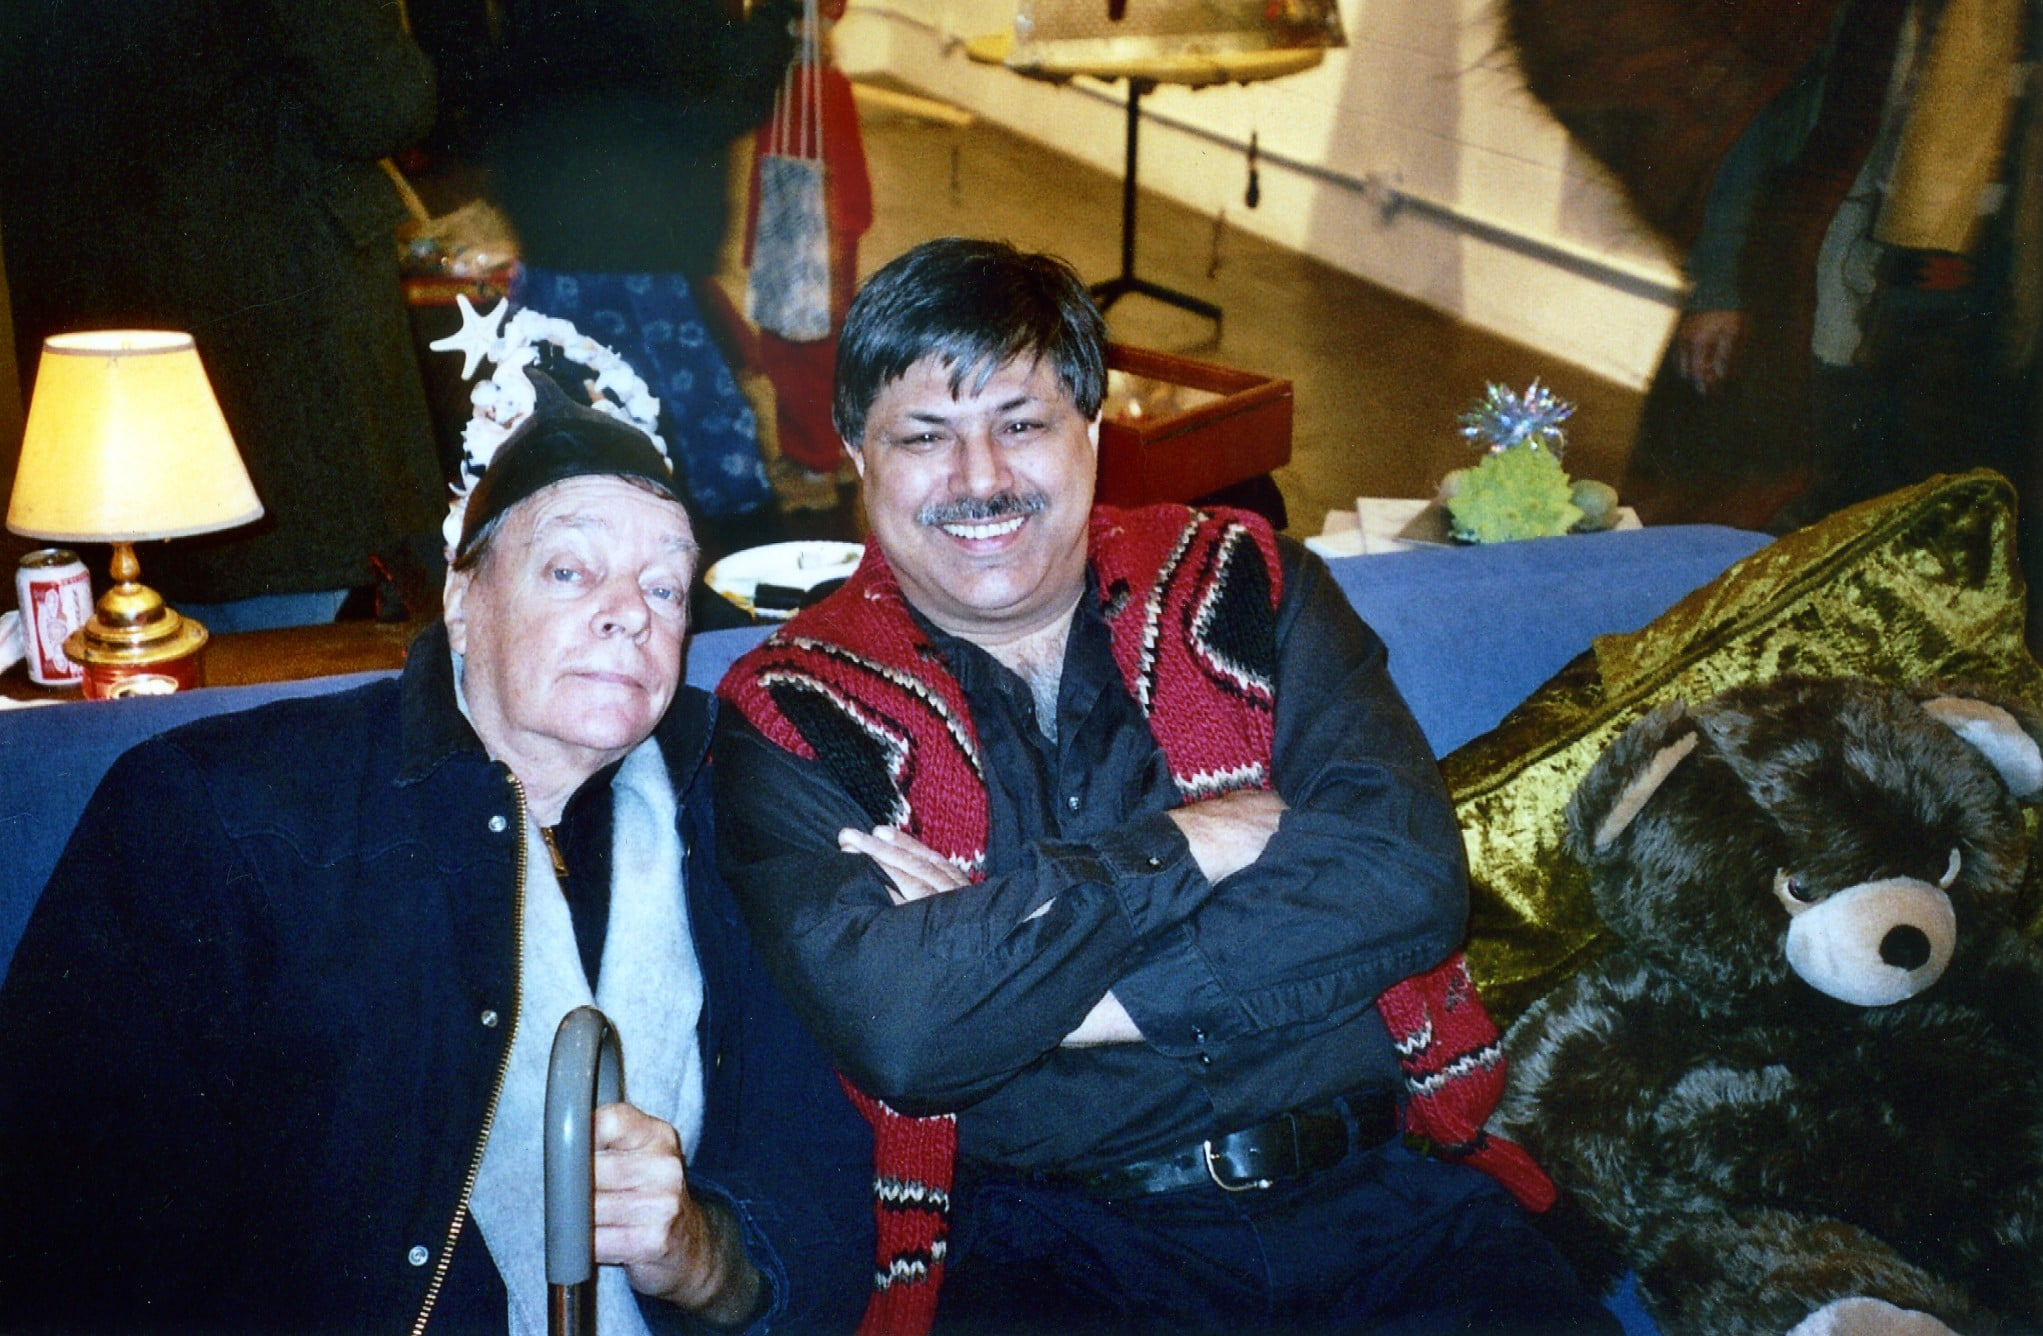 Tom (left) is wearing a hat and blue jacket and holding a cane, and George (right) is smiling with his arms crossed and wearing a black shirt and a red patterned sweater vest.